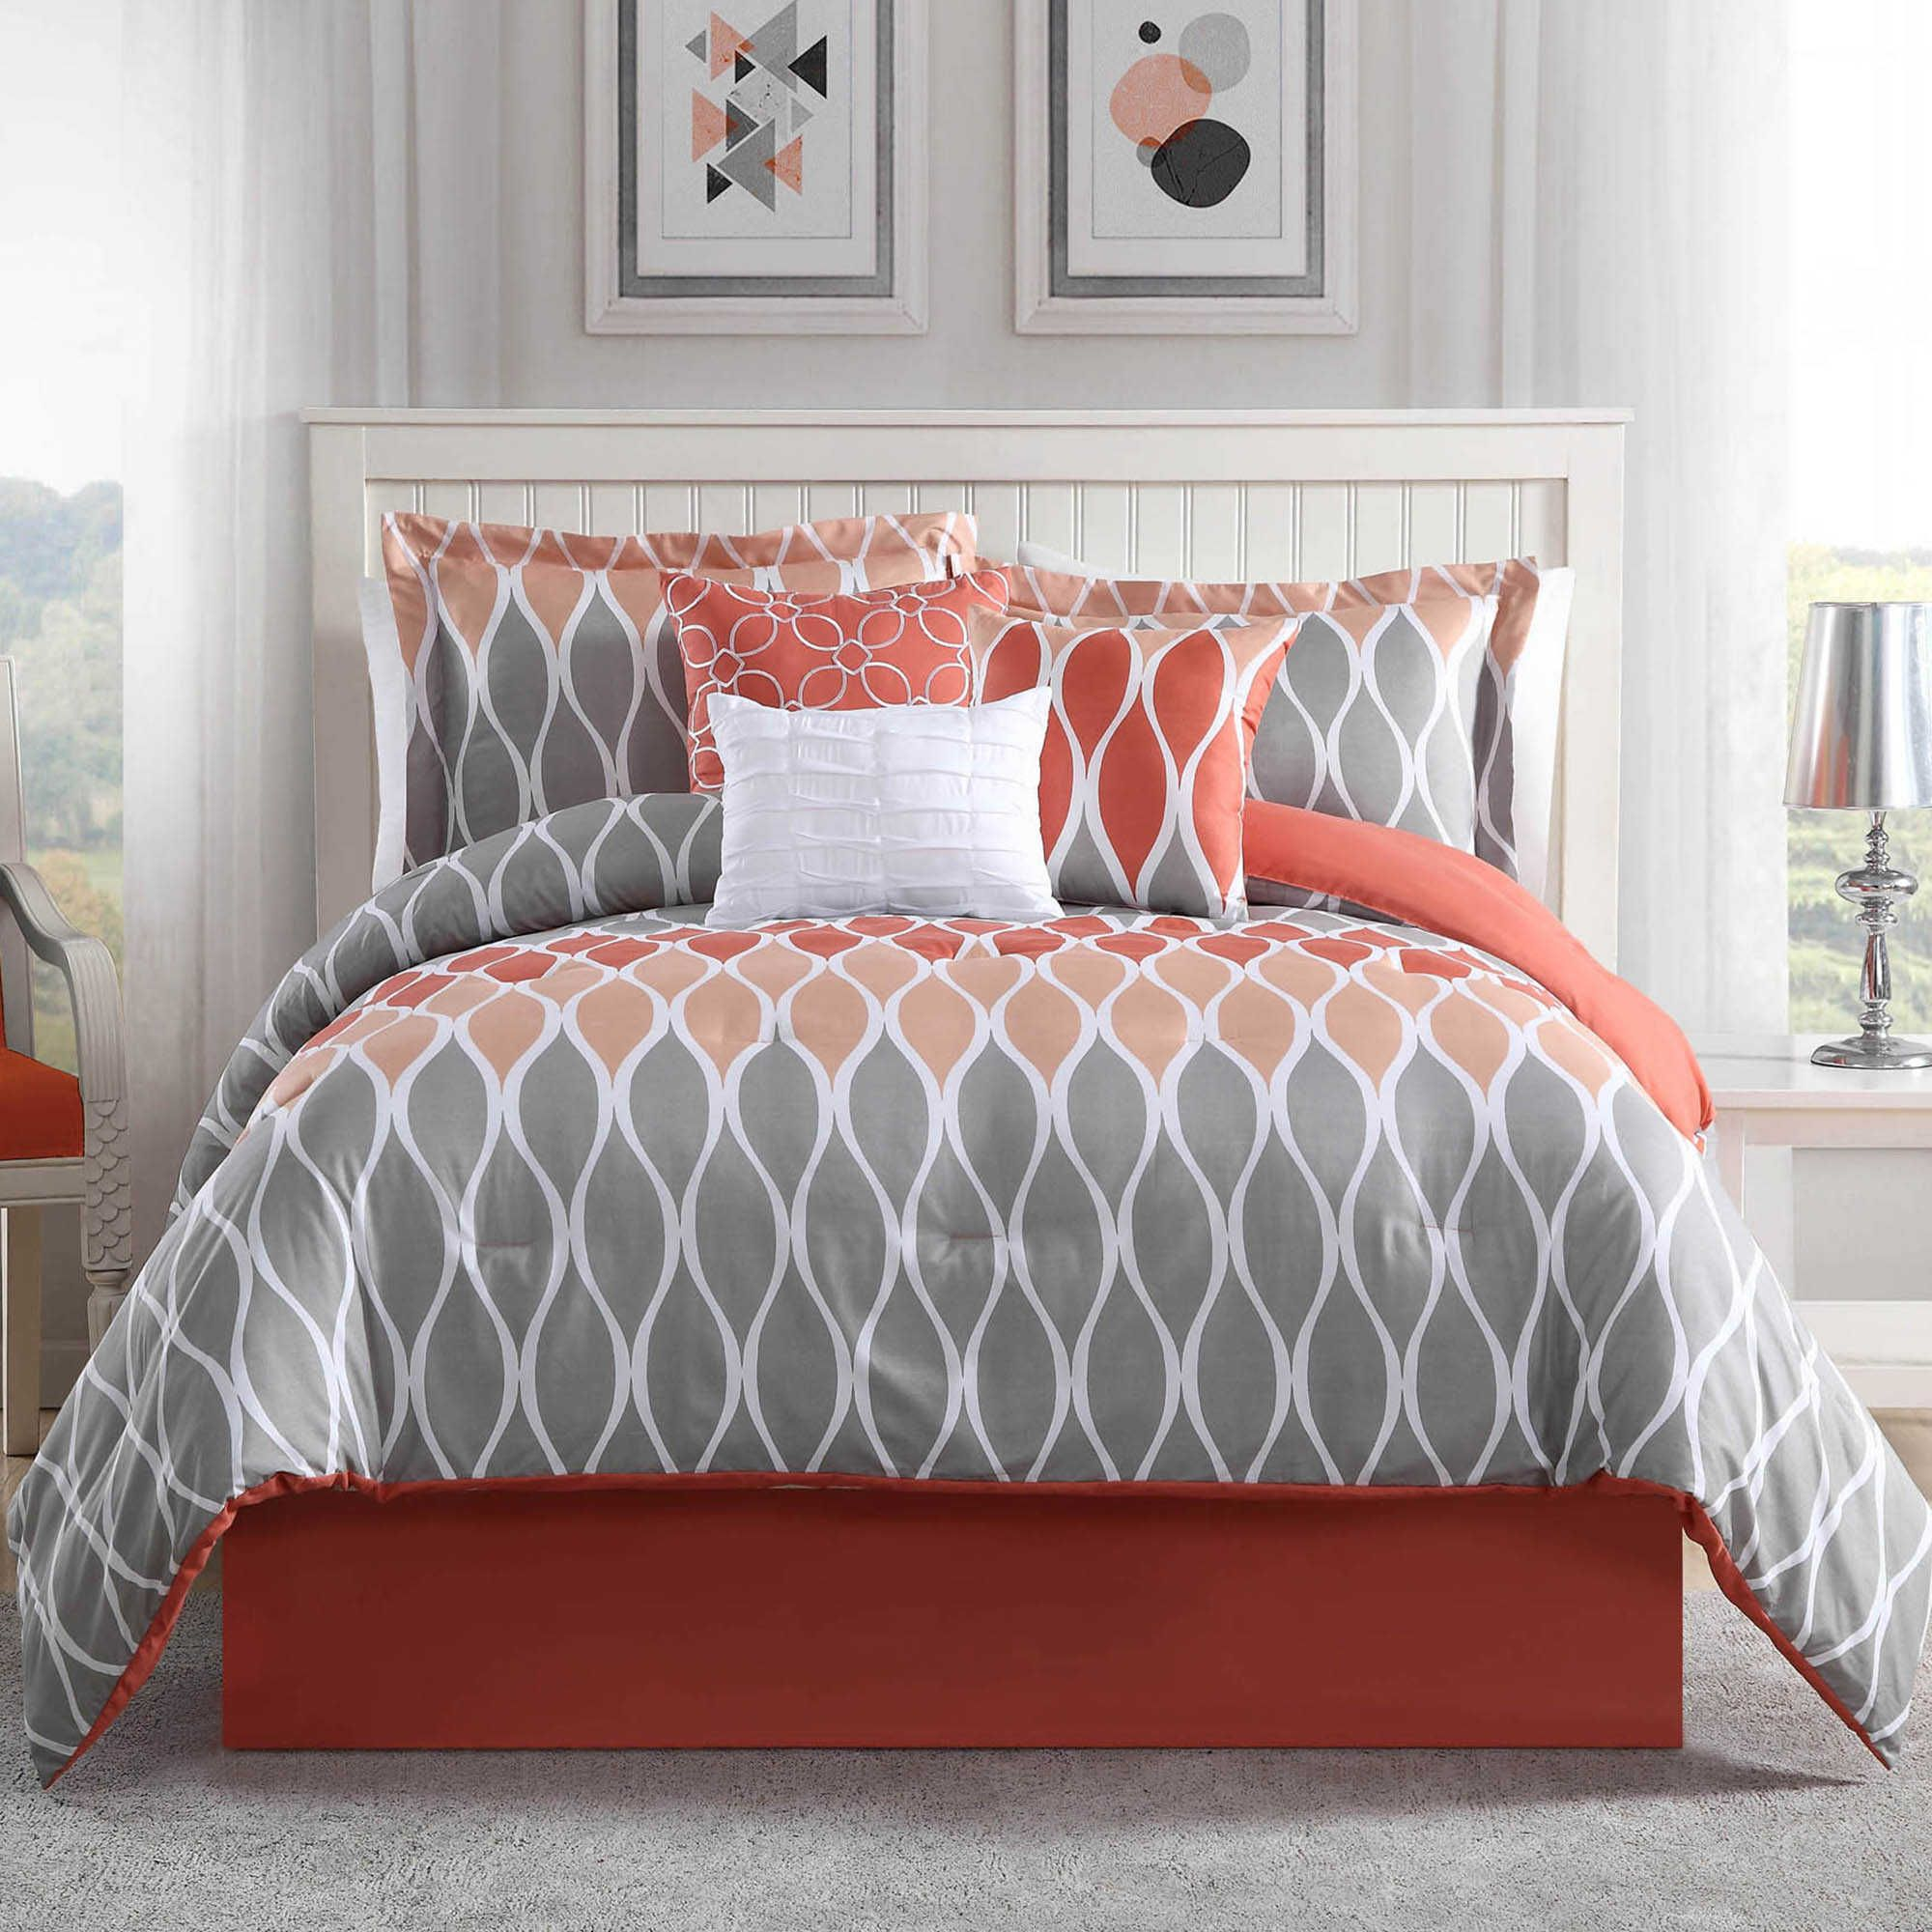 Studio 17 Clarisse 7 Piece King Reversible Comforter Set In Coral